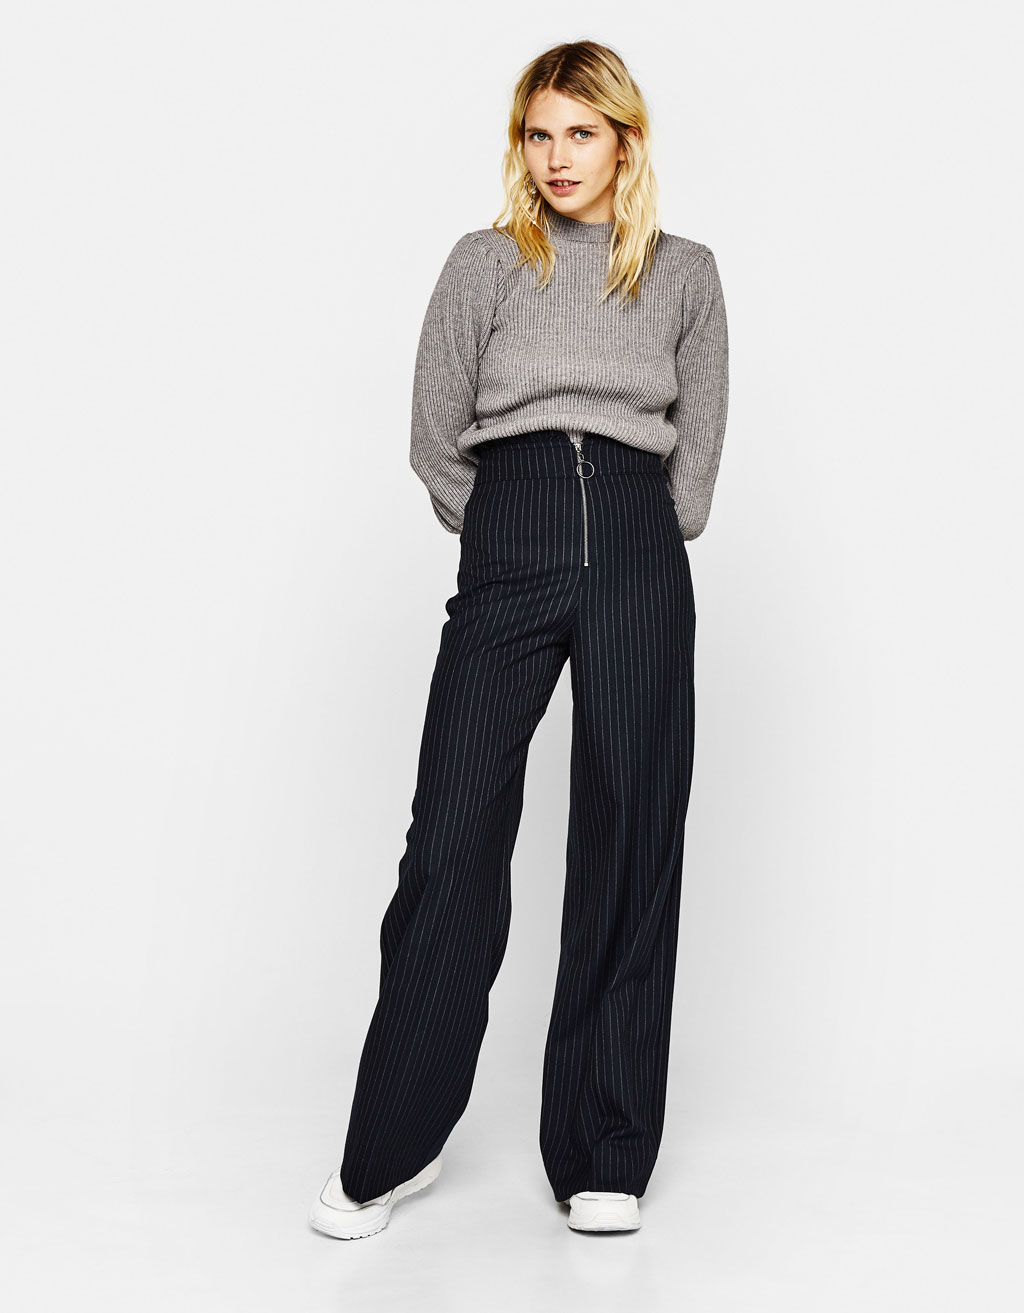 Pinstriped palazzo trousers